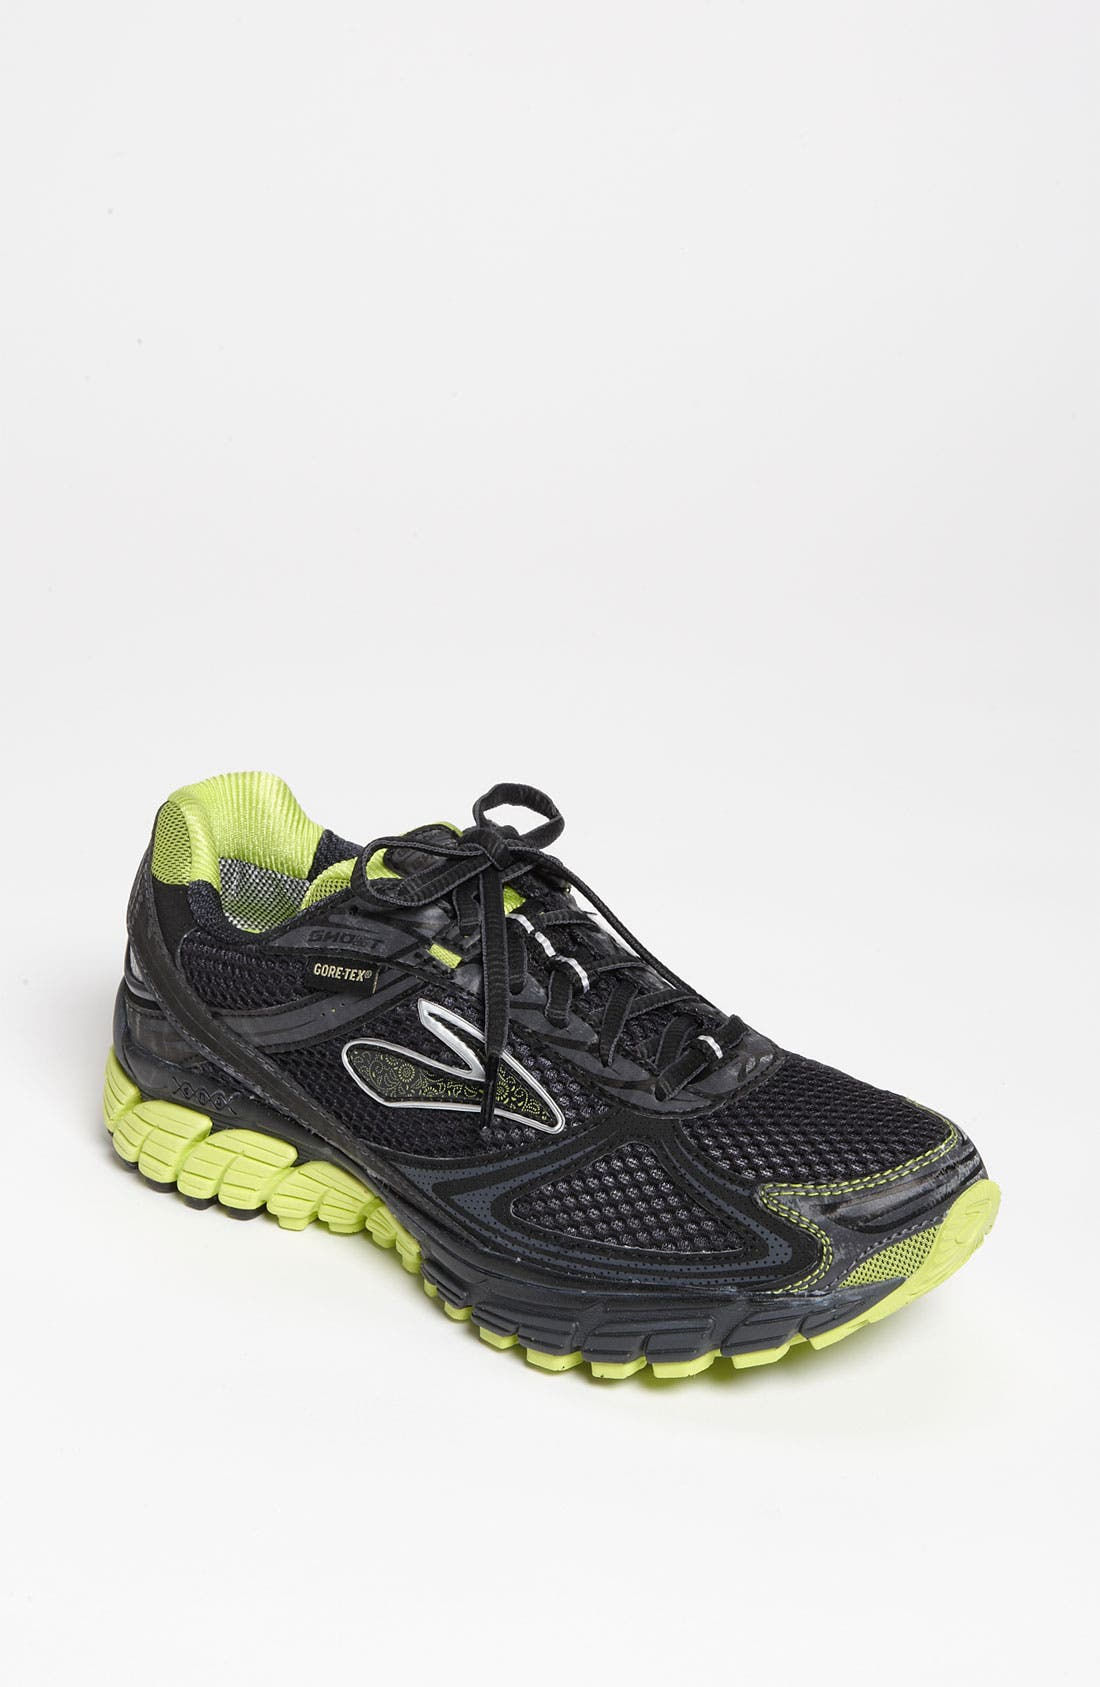 Alternate Image 1 Selected - Brooks 'Ghost Gore-Tex®' Running Shoe (Women)(Retail Price: $129.95)